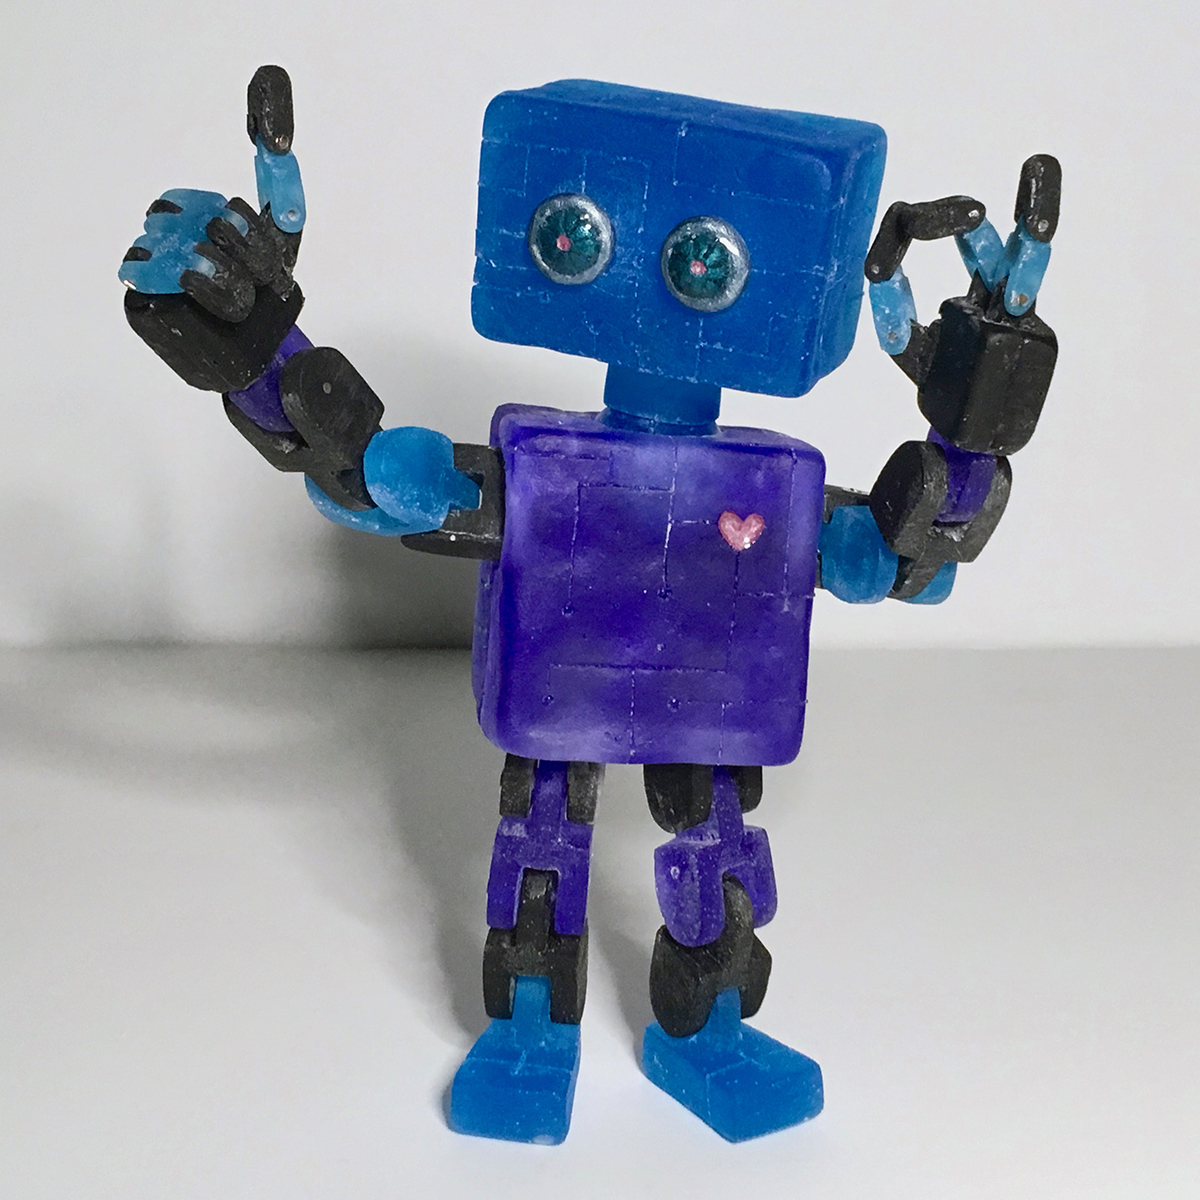 A small toy robot sculpture.